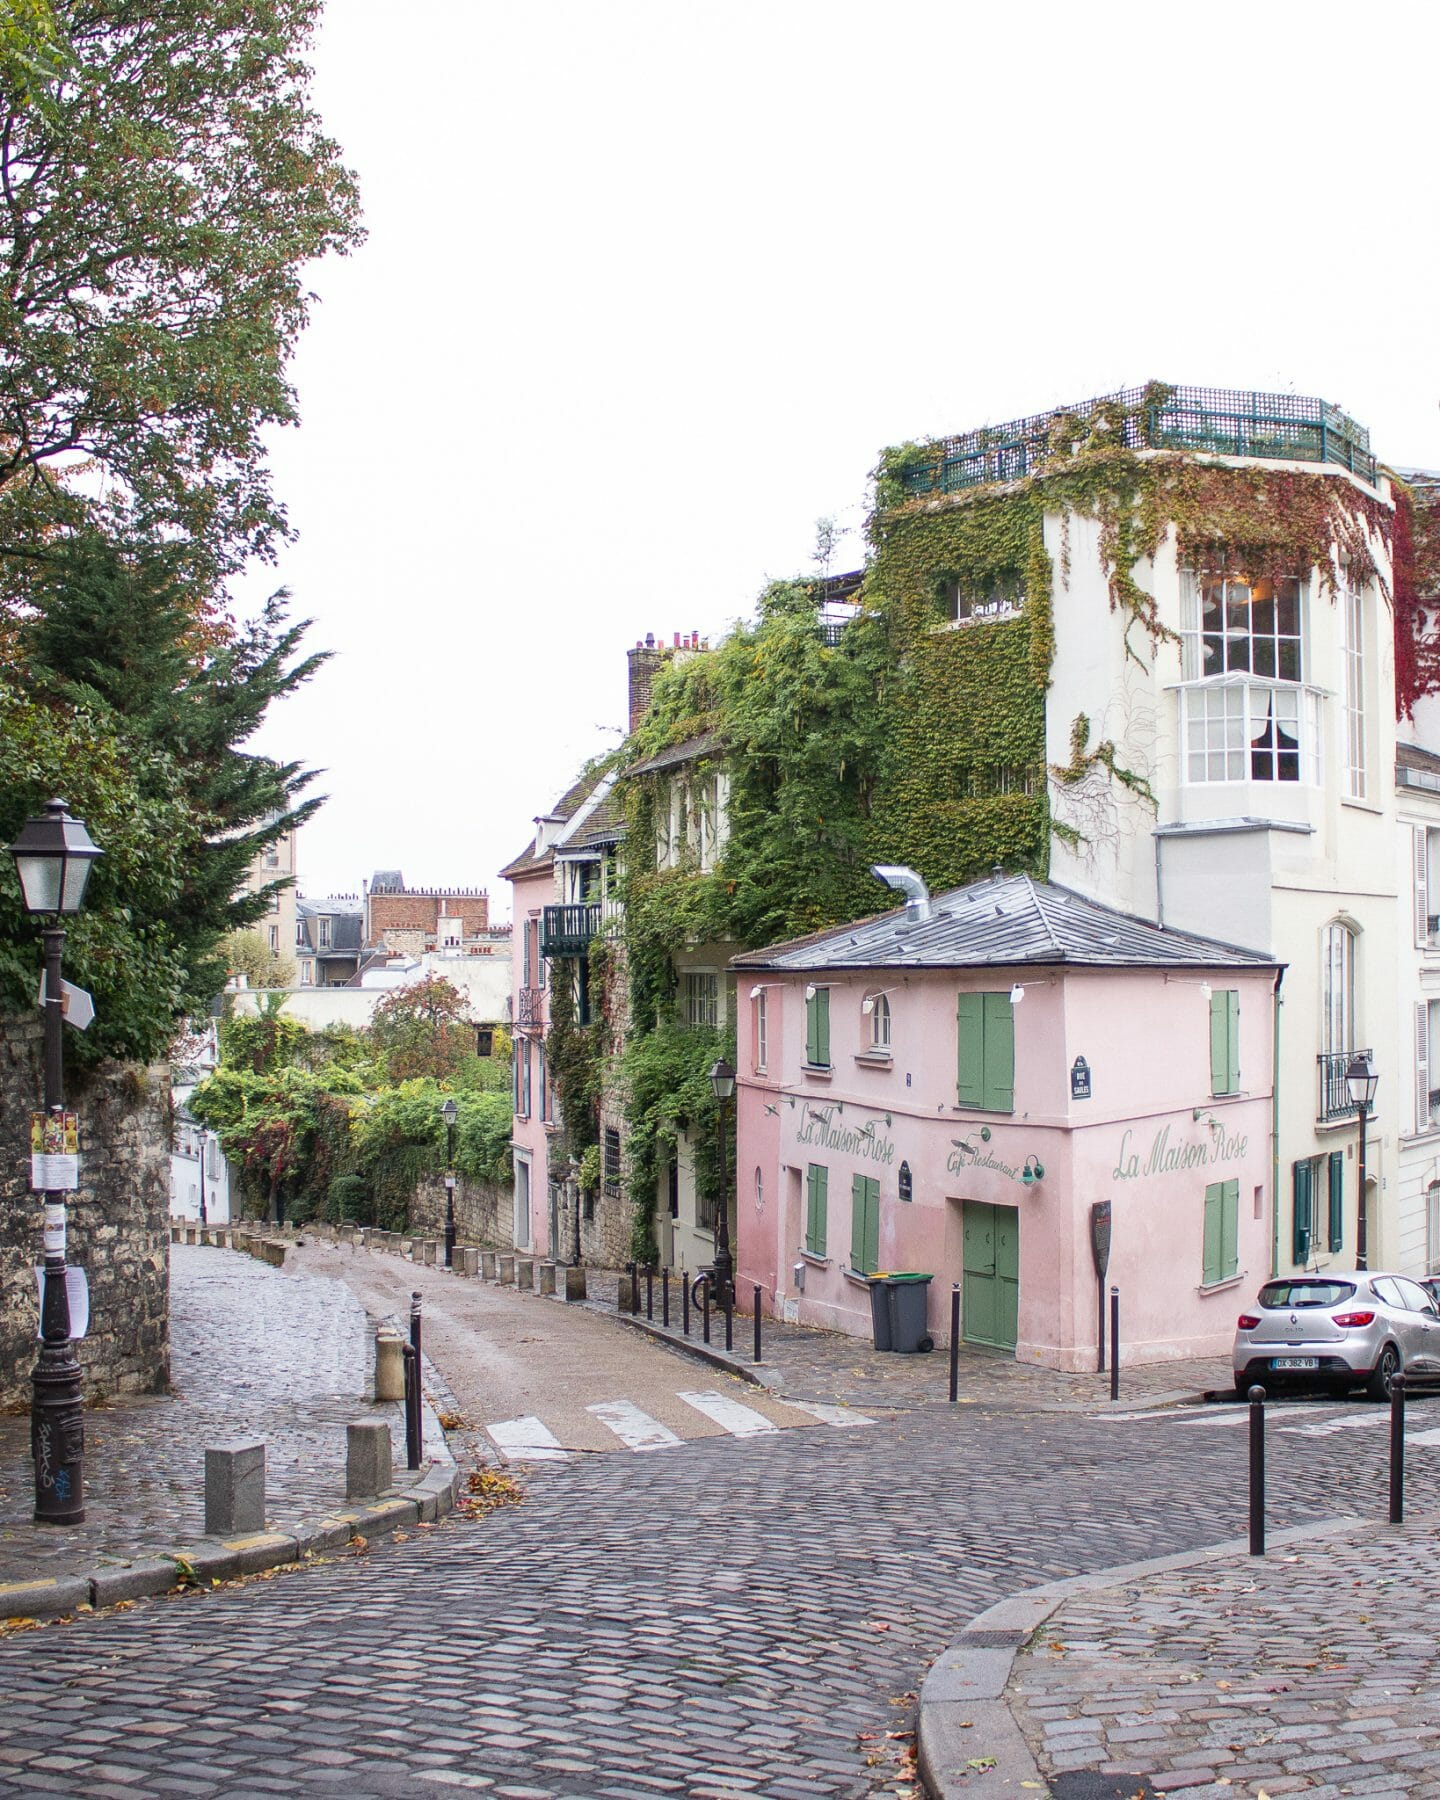 Things to do in Montmartre - La Maison Rose